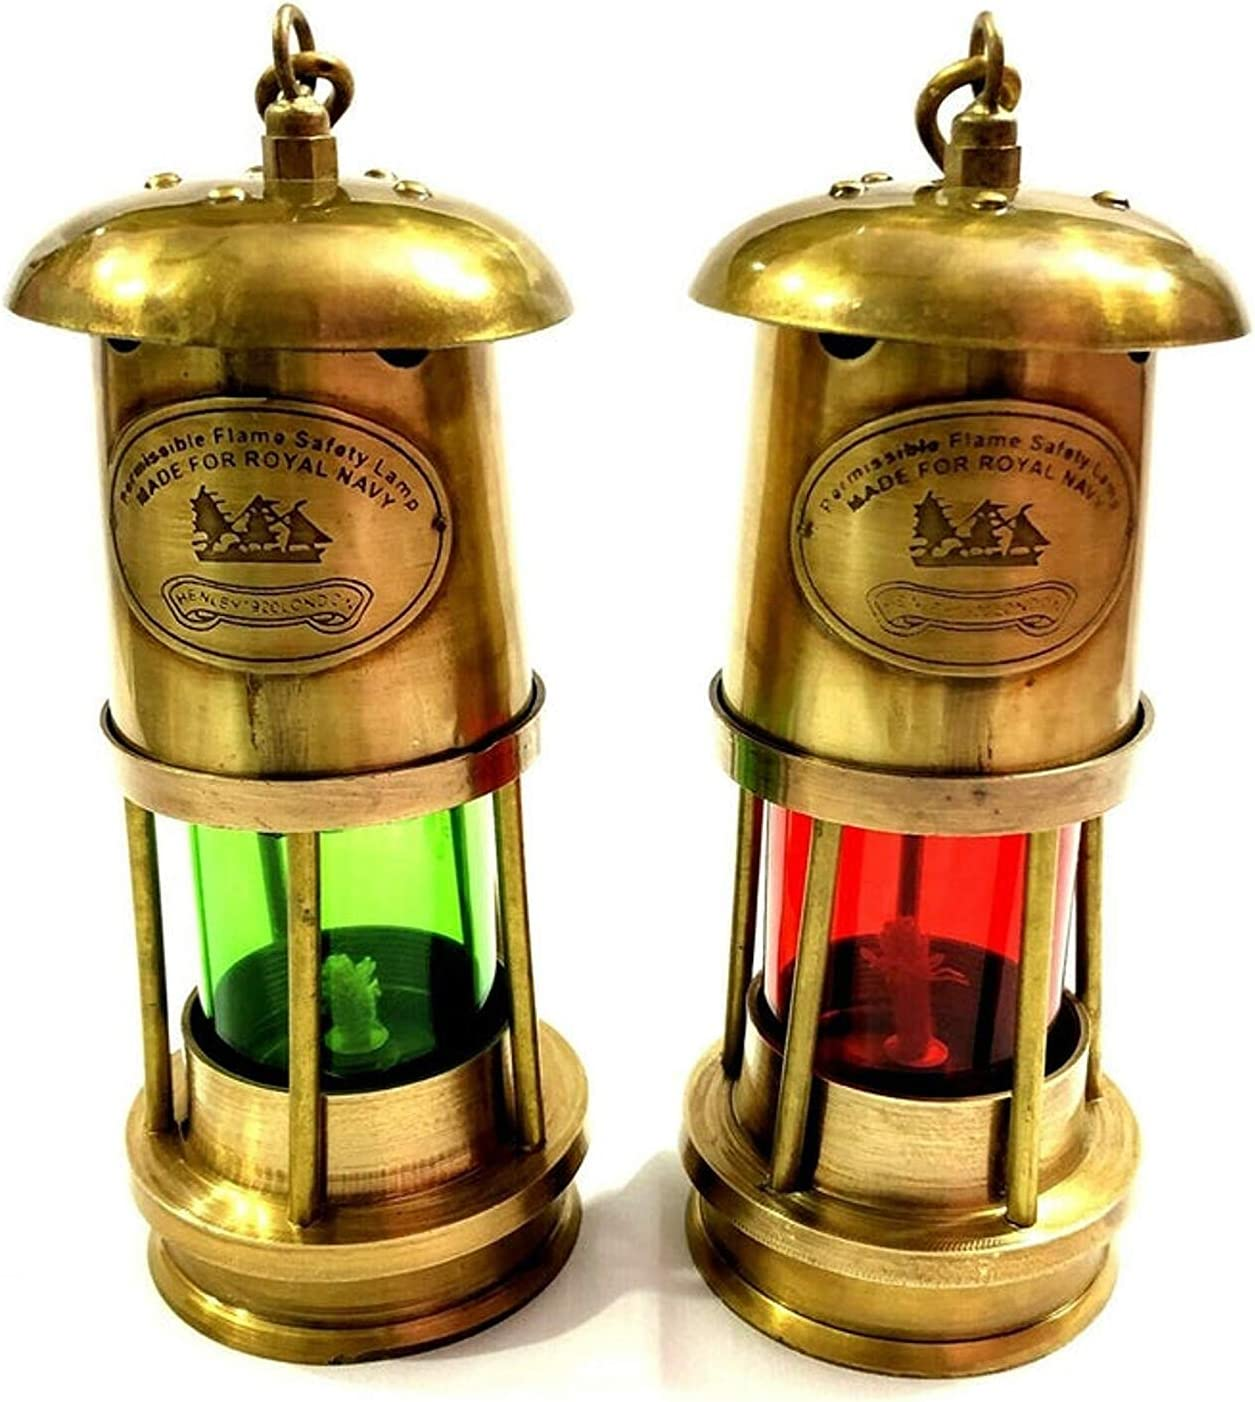 Nautical Collection Gifts Set of 2 Antique Brass Minor Lamp Vintage Nautical Ship Boat Light Lantern Decor Home Decorative